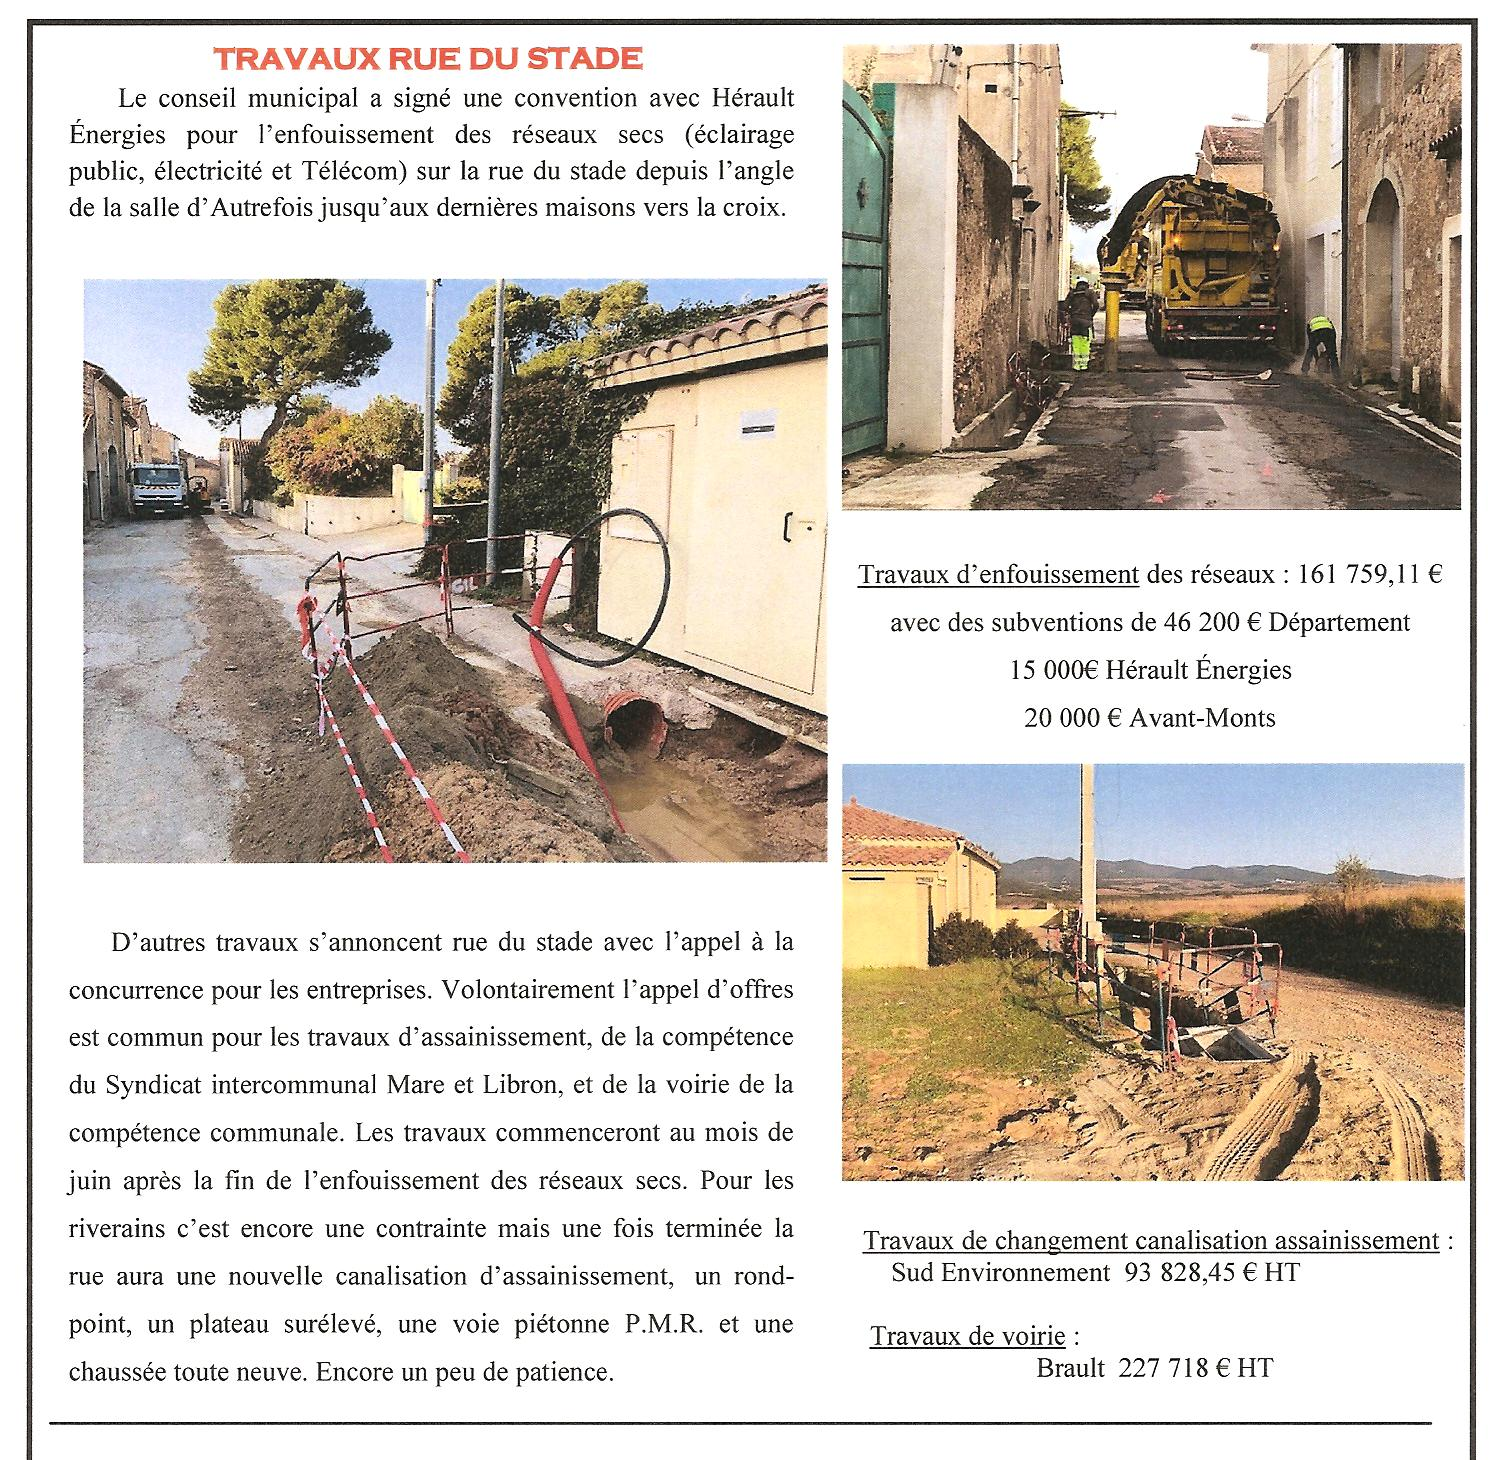 Subvention Avant-Monts 20 000€